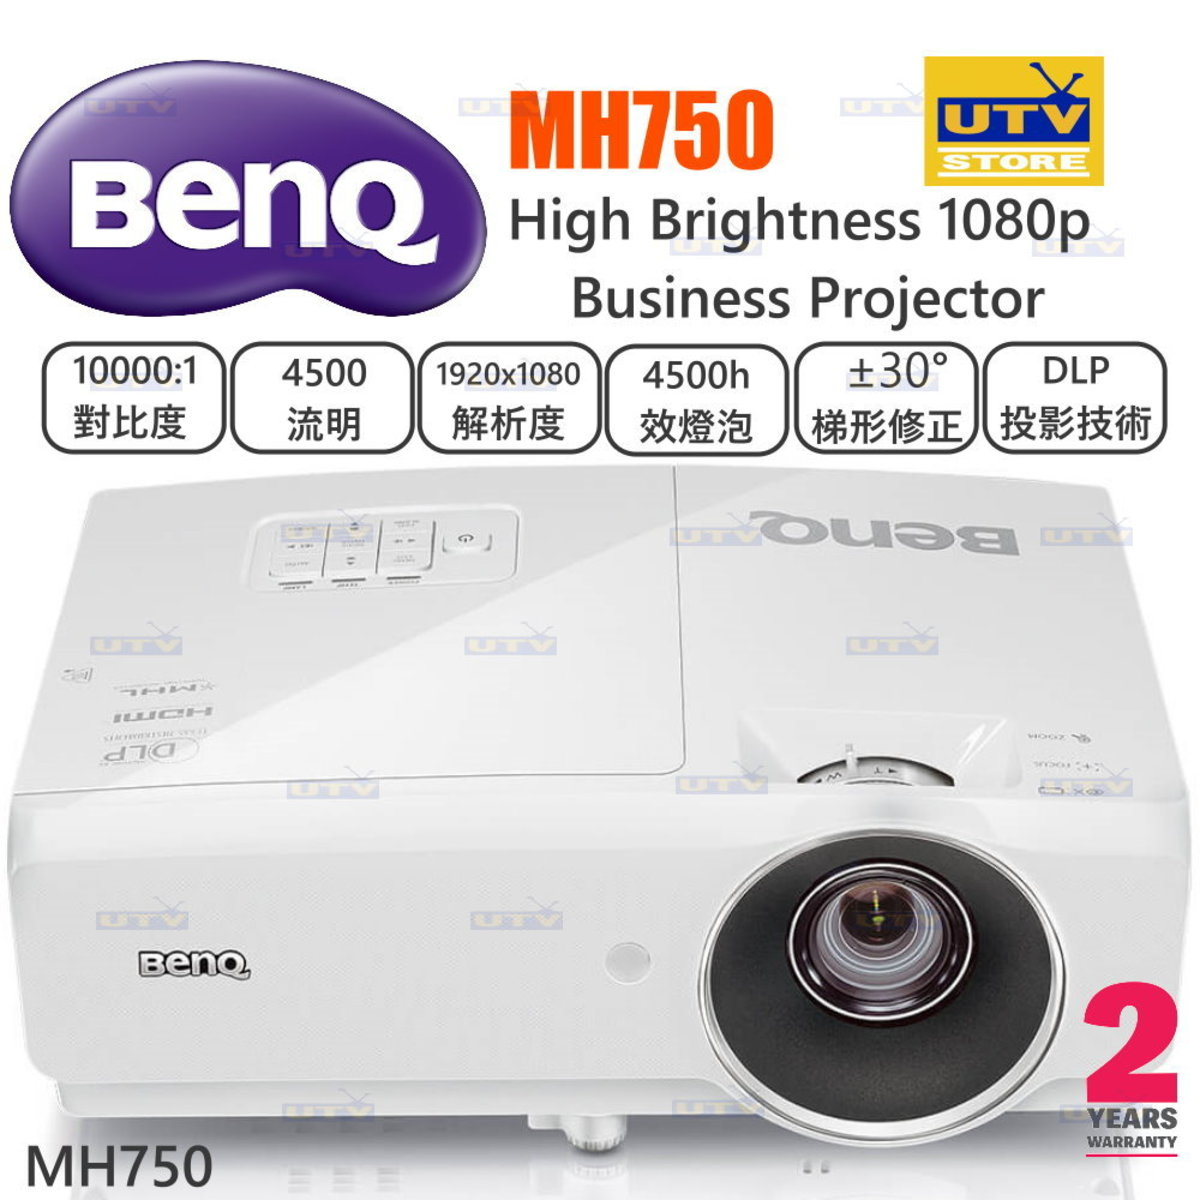 MH750 High Brightness 1080p Business Projector